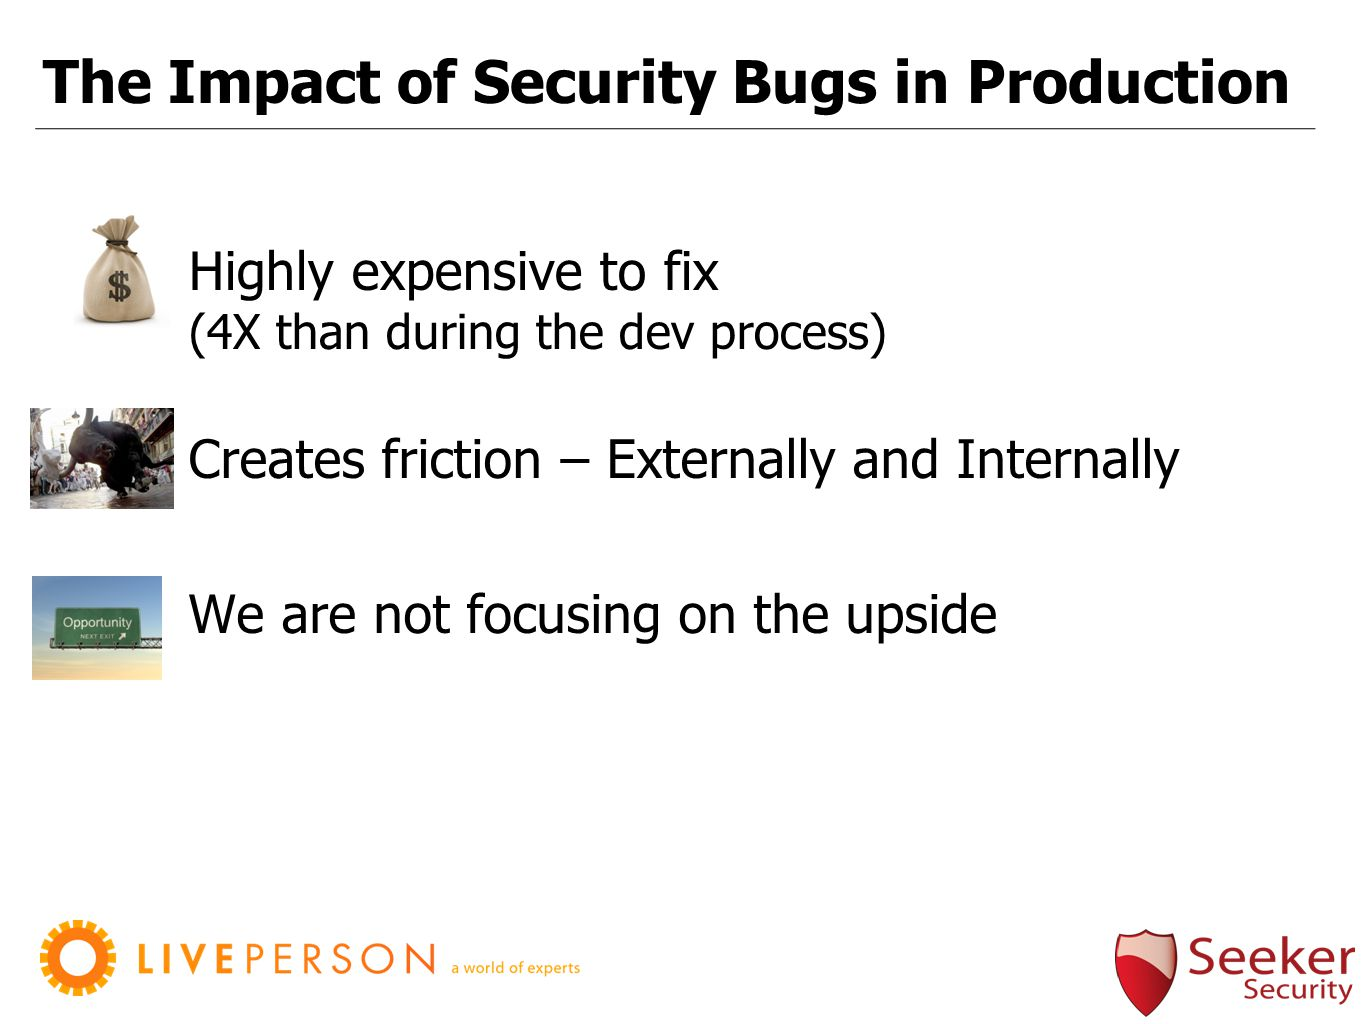 The Impact of Security Bugs in Production Highly expensive to fix (4X than during the dev process) We are not focusing on the upside Creates friction – Externally and Internally